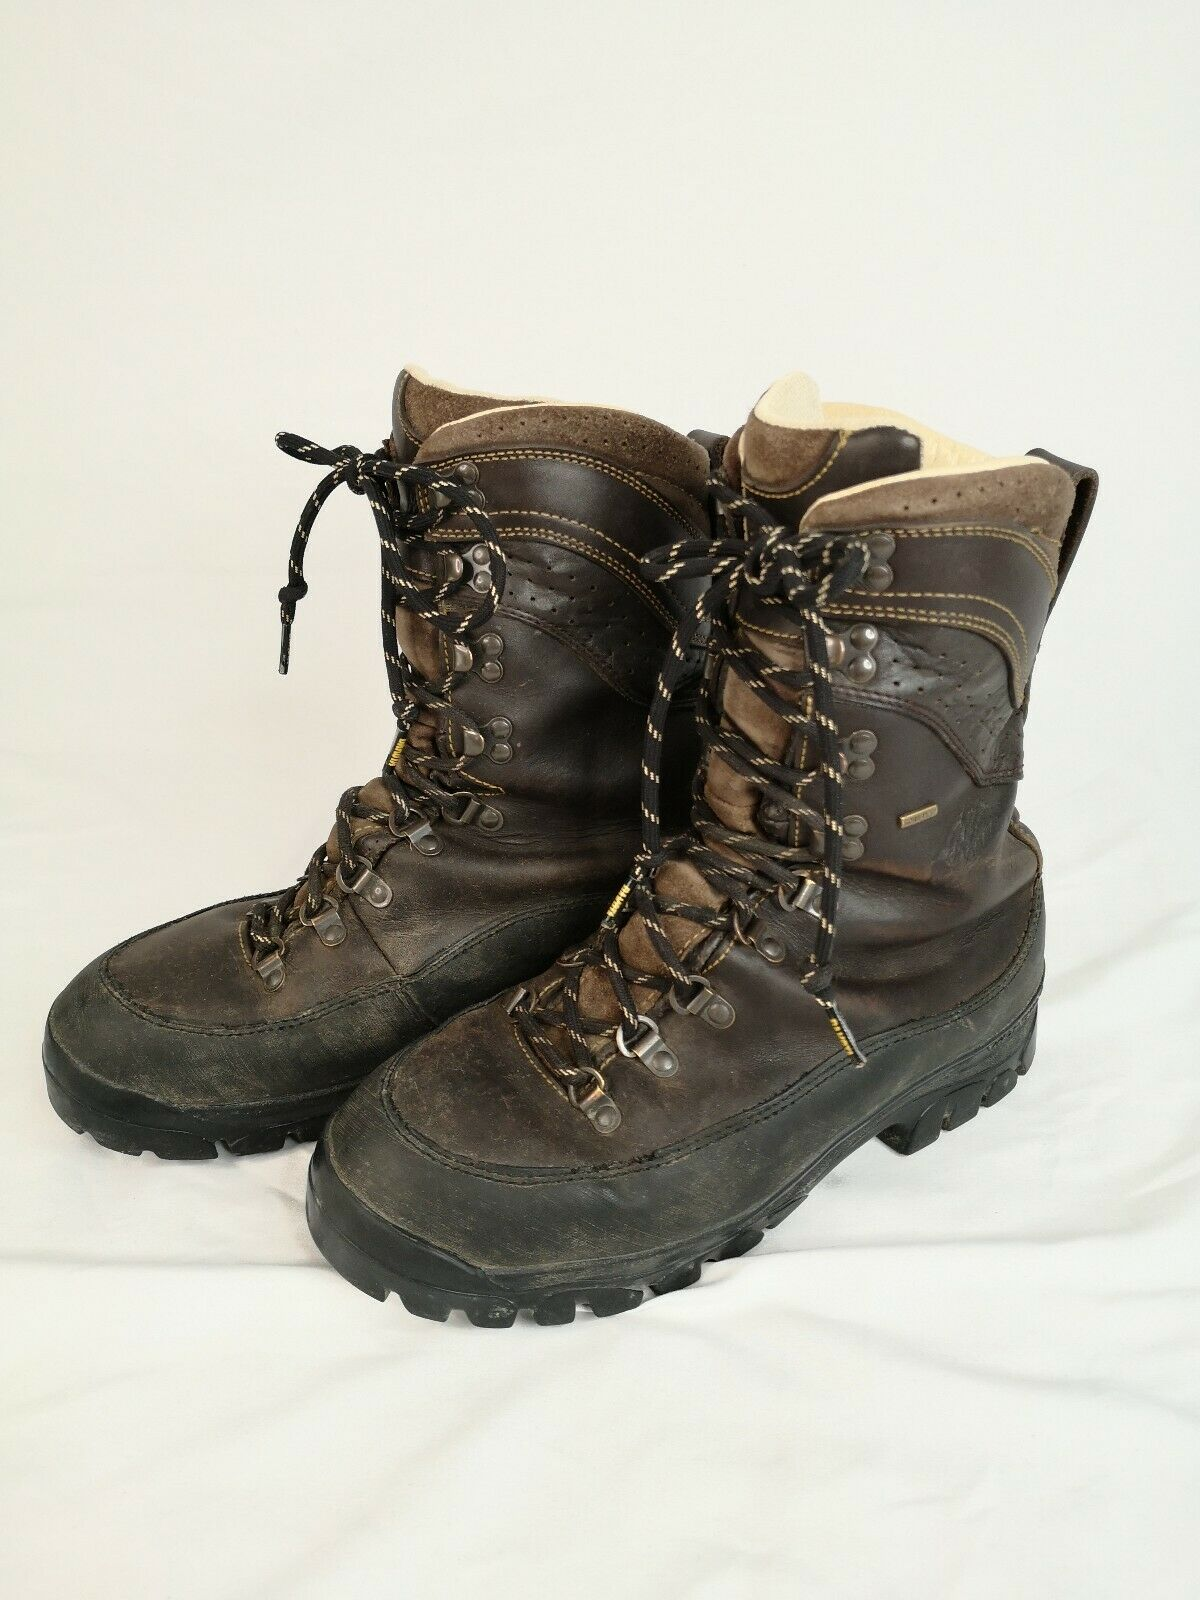 Danner Montana Hunter GTX 400g Insulated Gore-Tex Waterproof 10  Boots Sz 9.5D